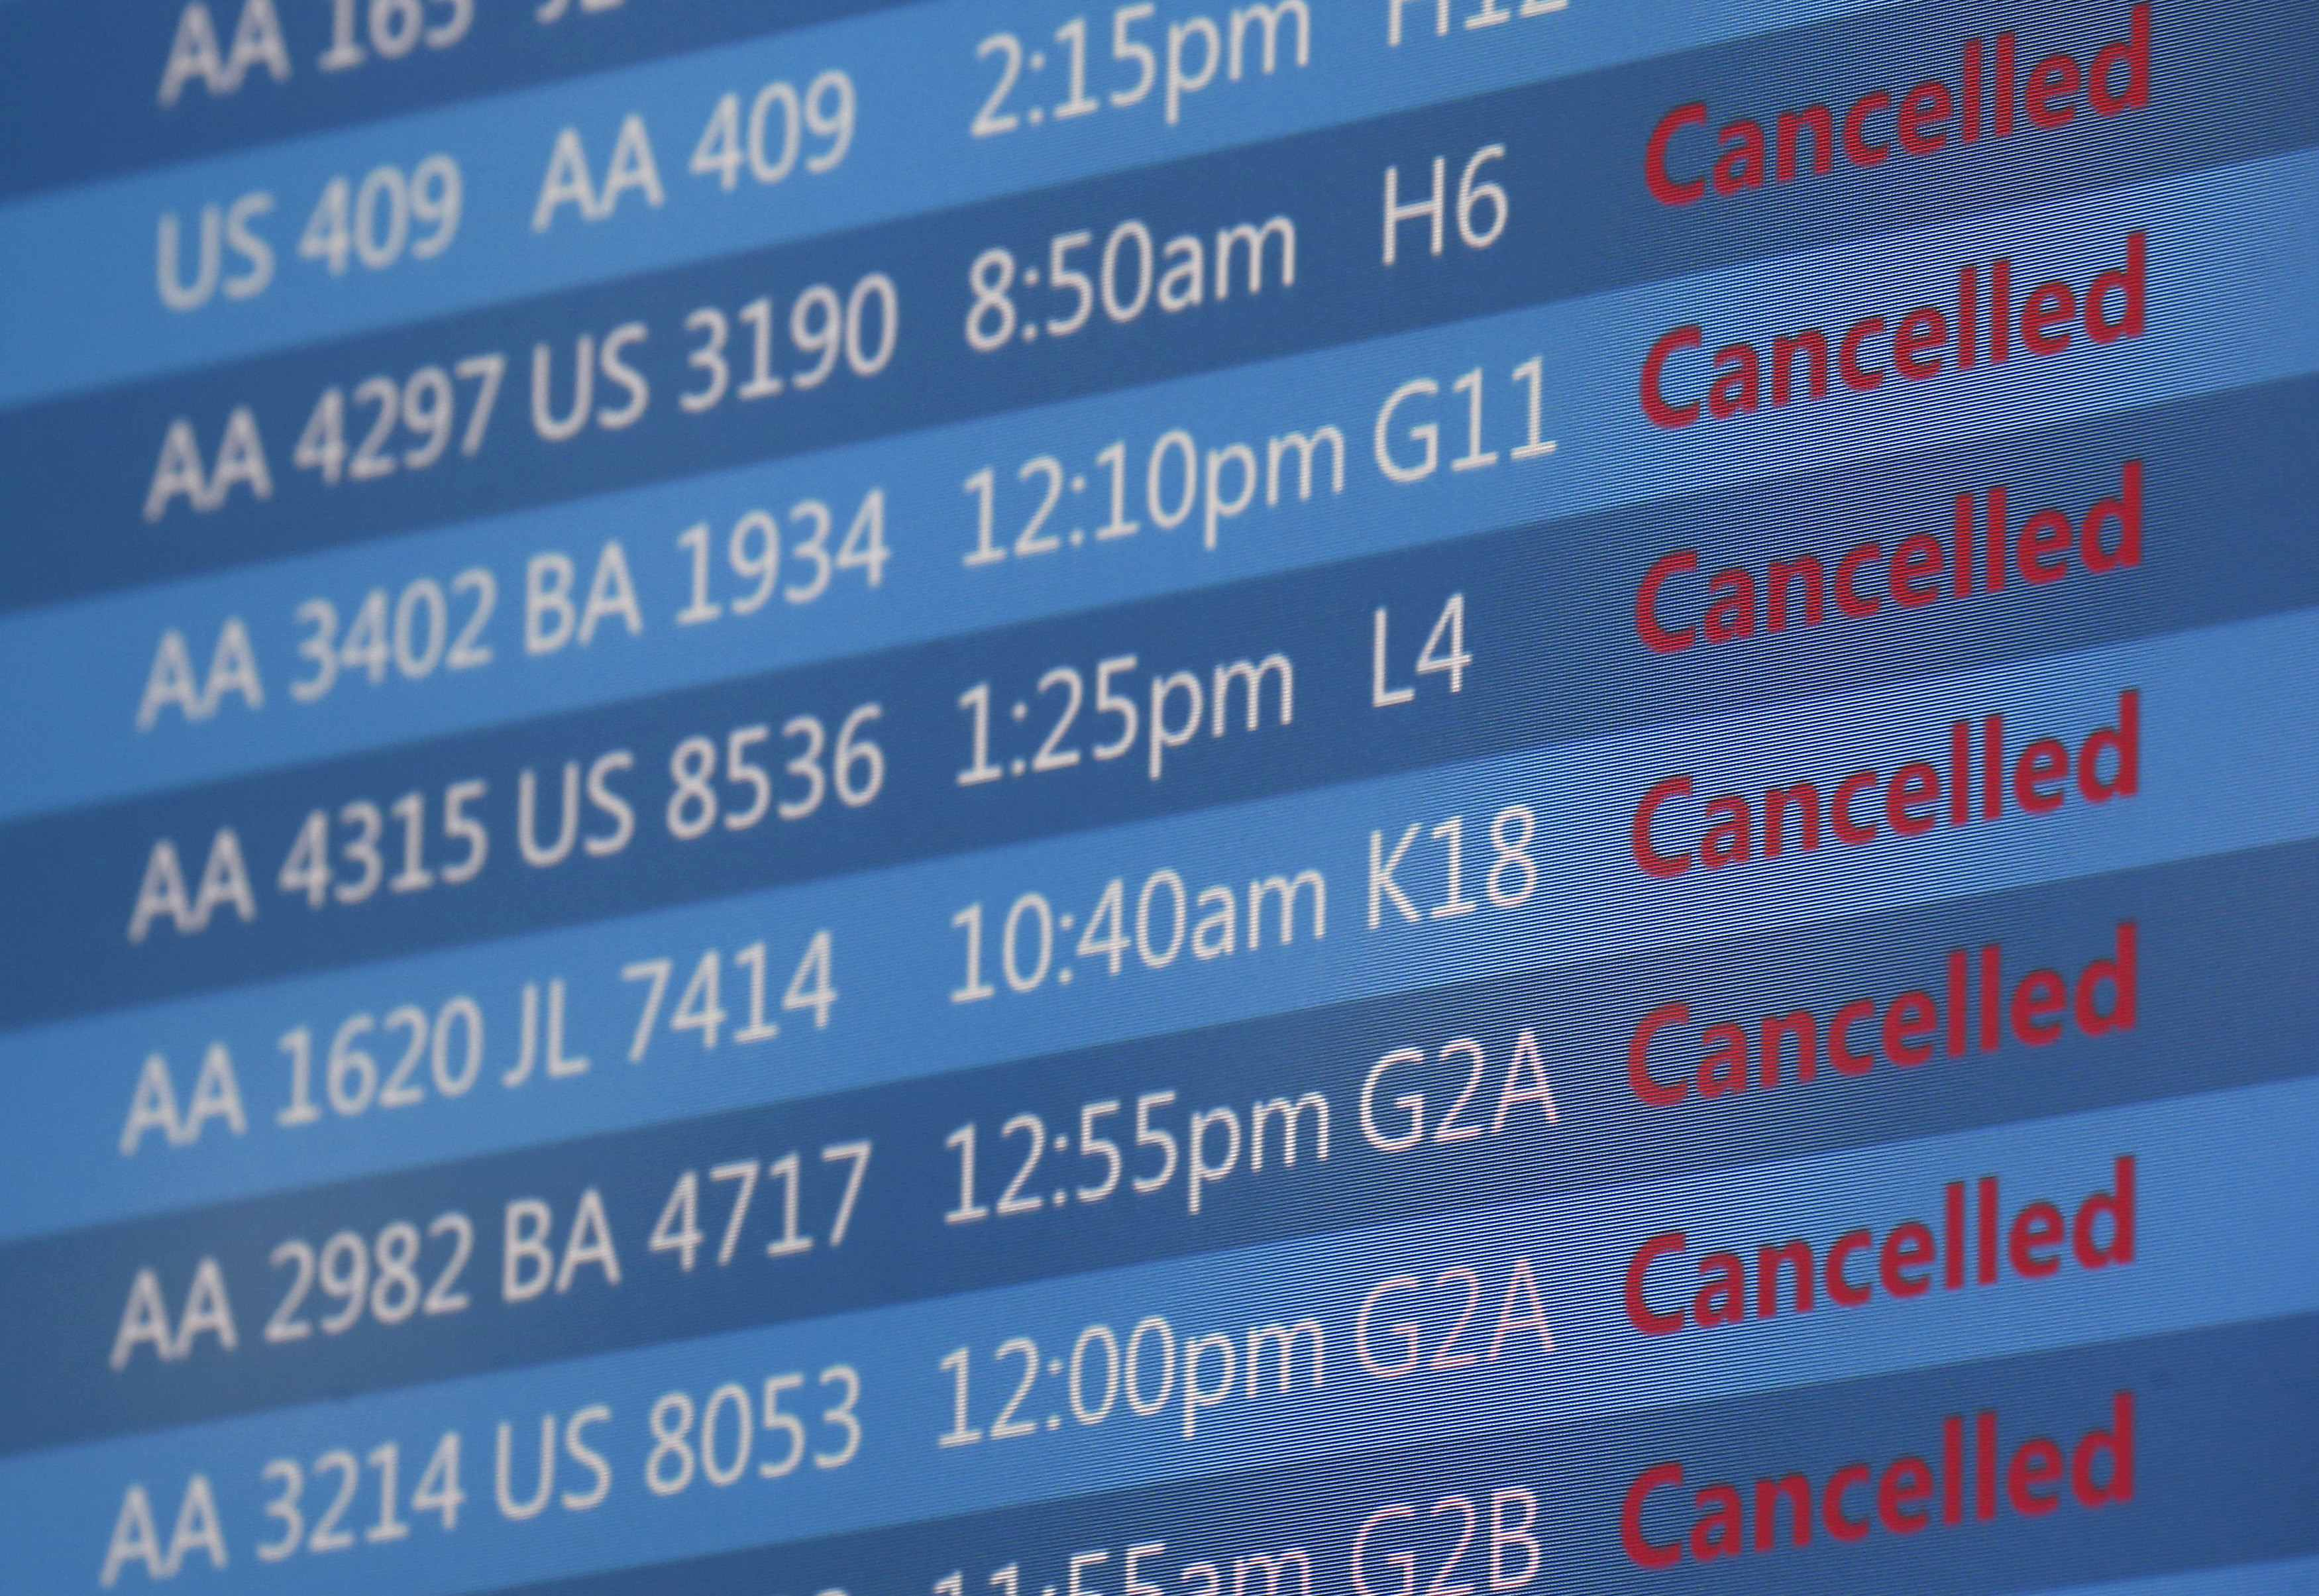 U.S. flight woes linger after Chicago air traffic center fire